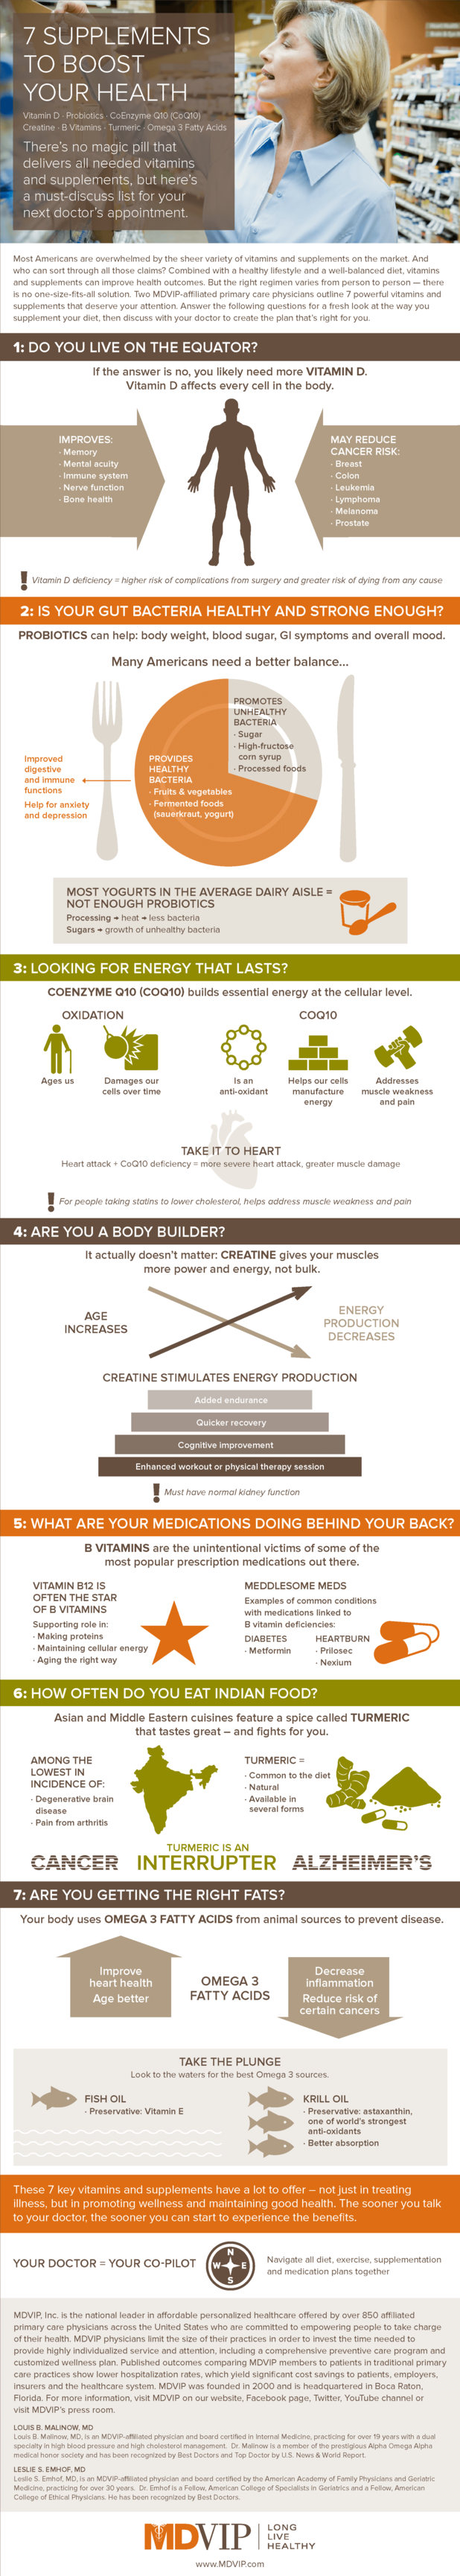 Health Boosting Vitamins and Supplements Infographic